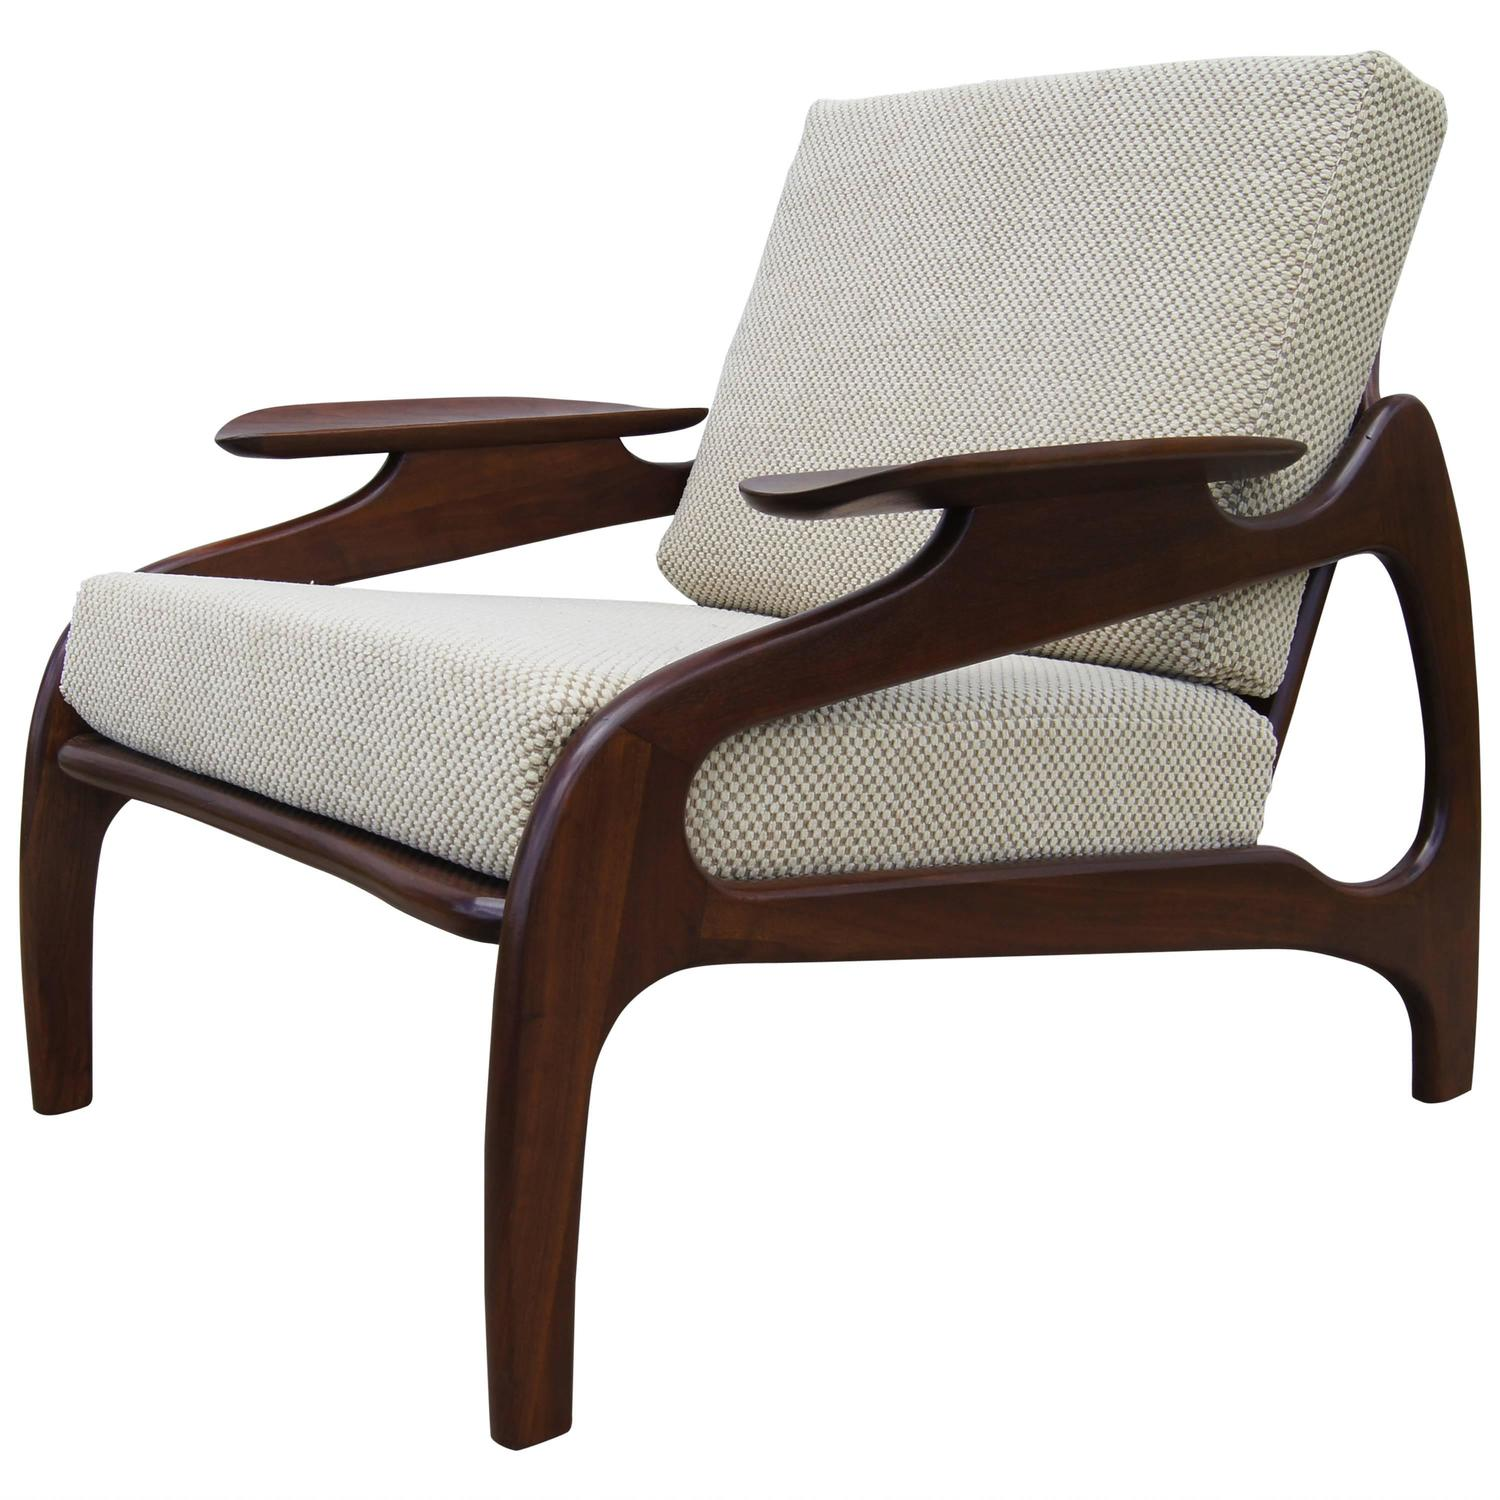 adrian pearsall chair designs rocking pads for nursery model 1209c walnut lounge by